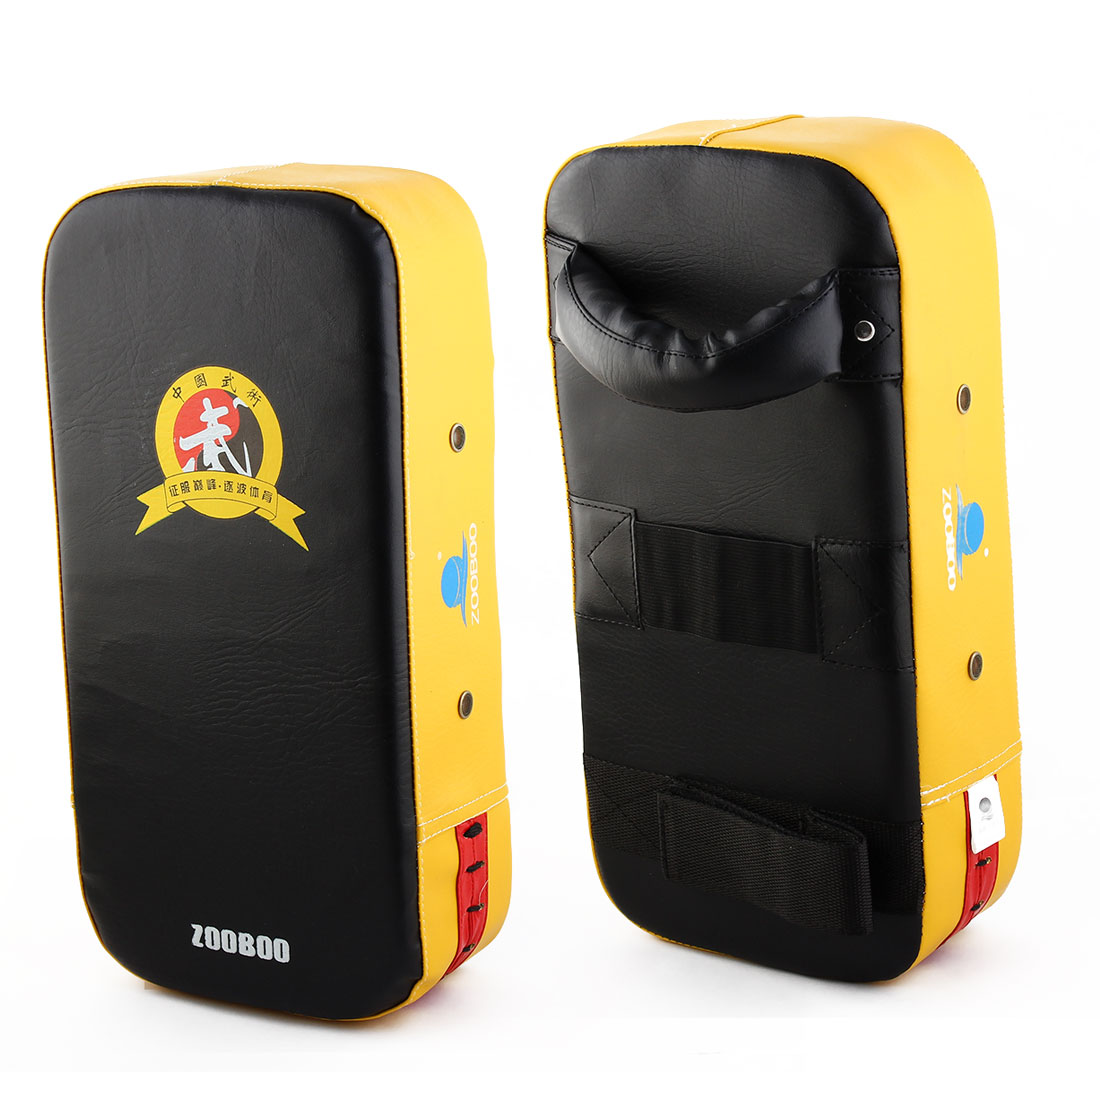 Zooboo Authorized Thai Kick Boxing Training Focus Pads Strike Shield Yellow Pair